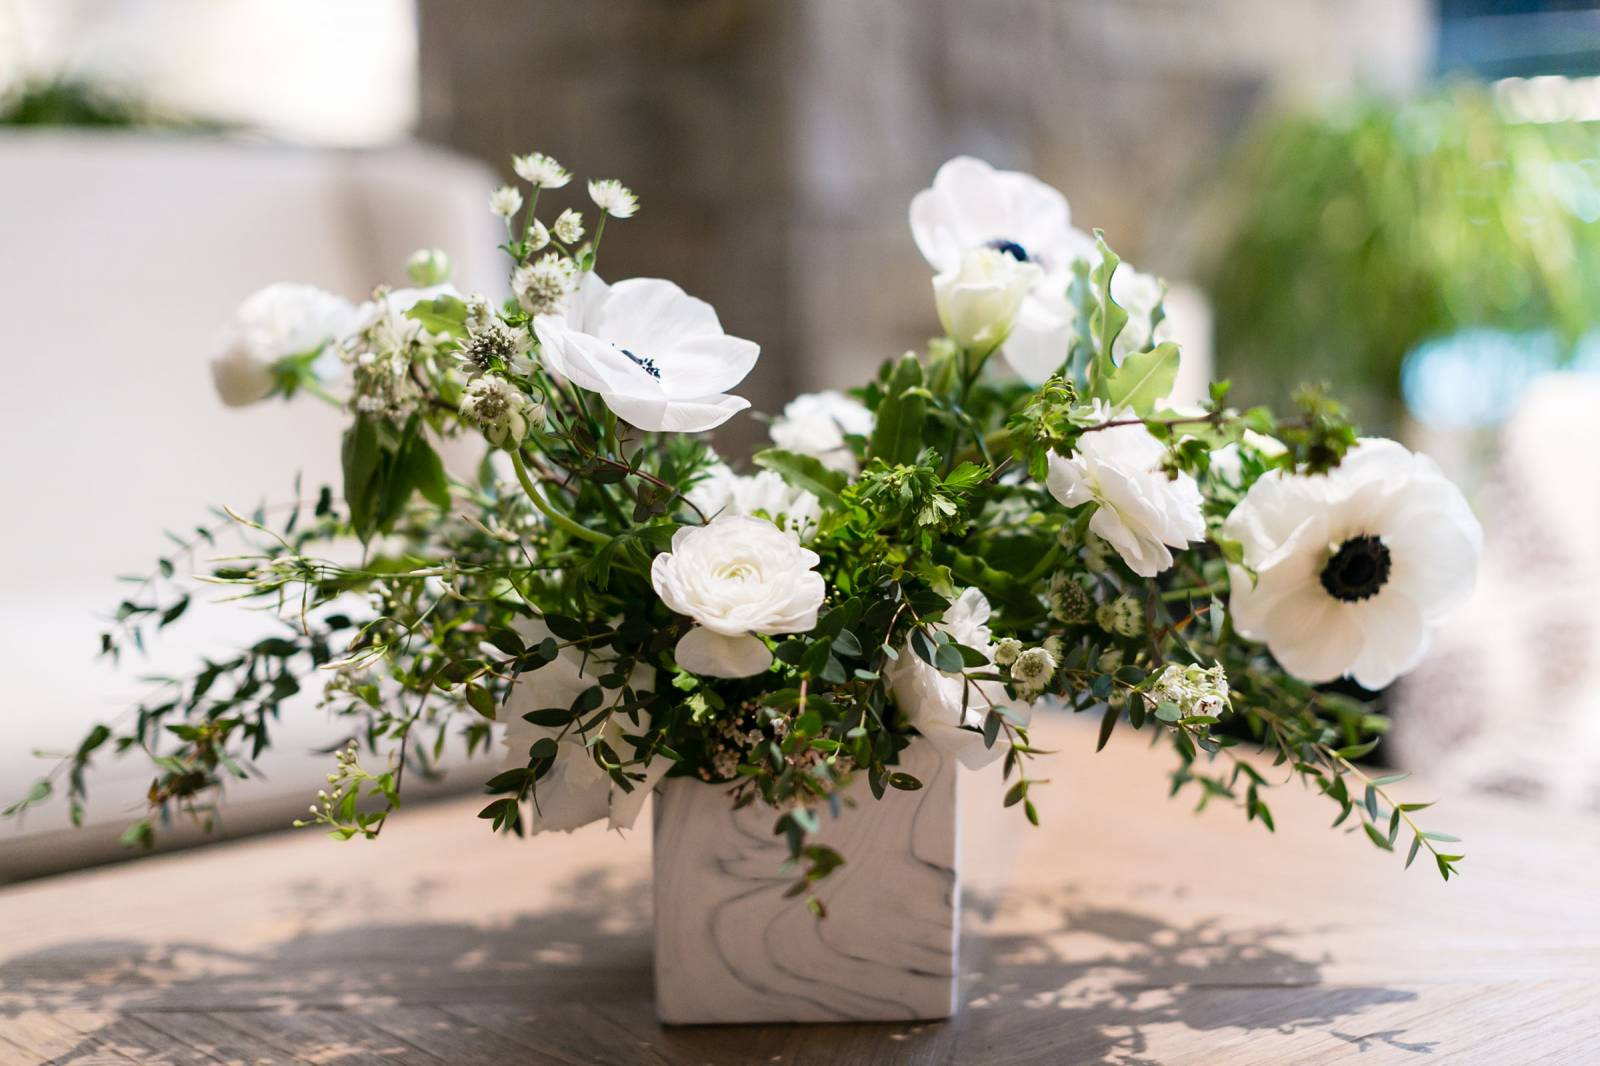 White blooms and greenery in square white container